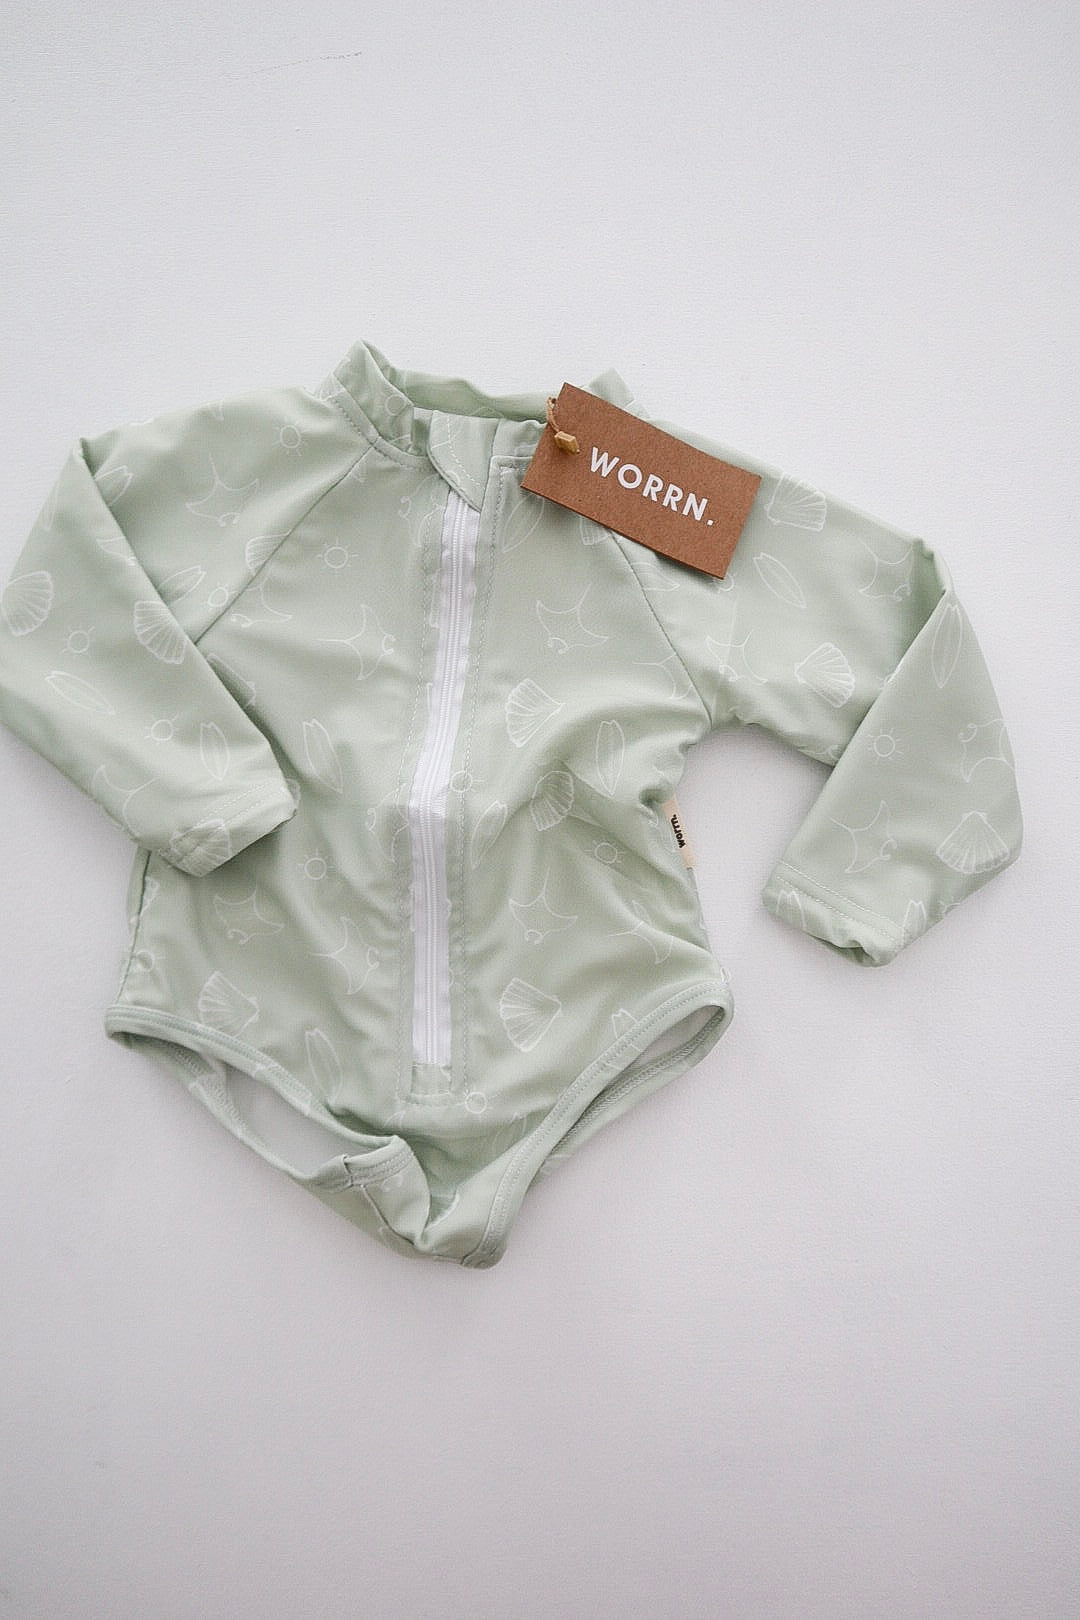 Worrn x Cody James Swim - Onesie - sea mist